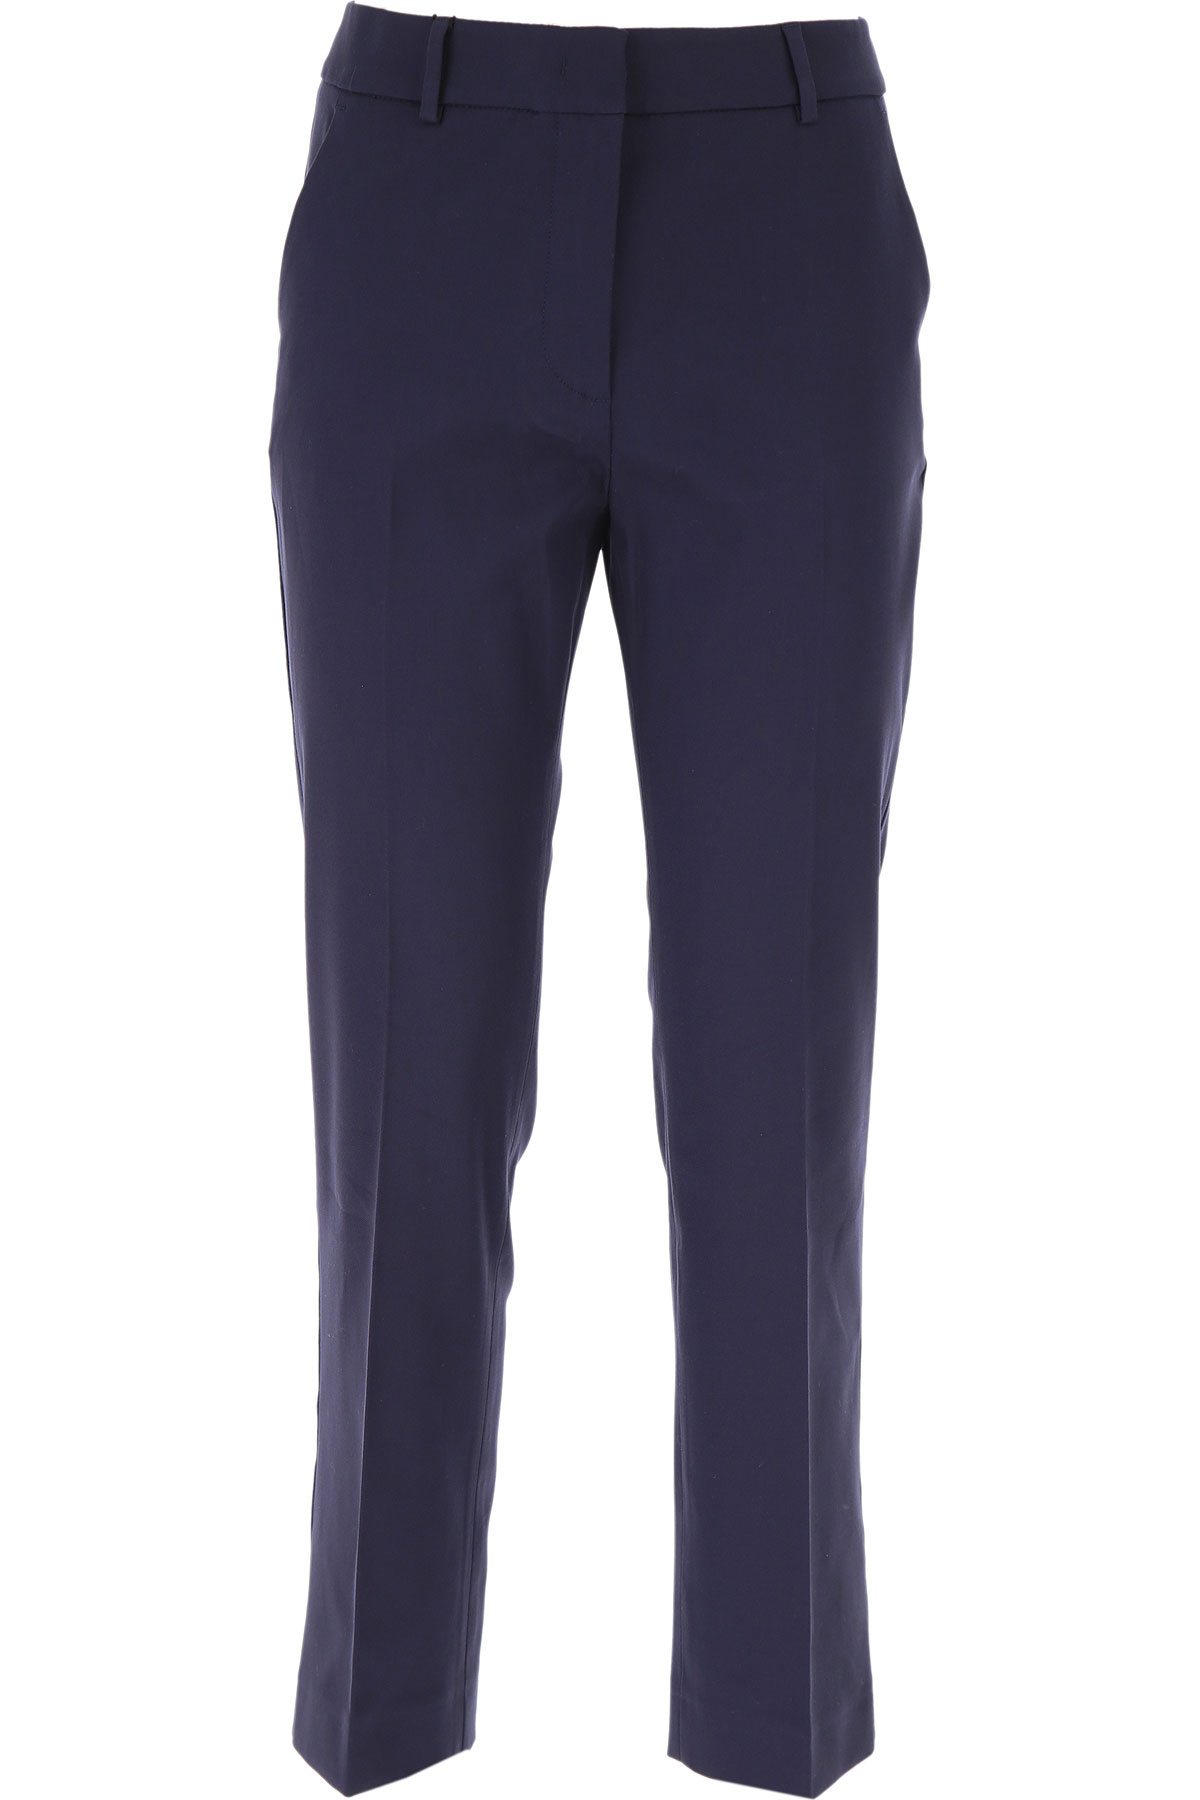 Max Mara Pants for Women On Sale, Navy Blue, Cotton, 2019, 30 34 8